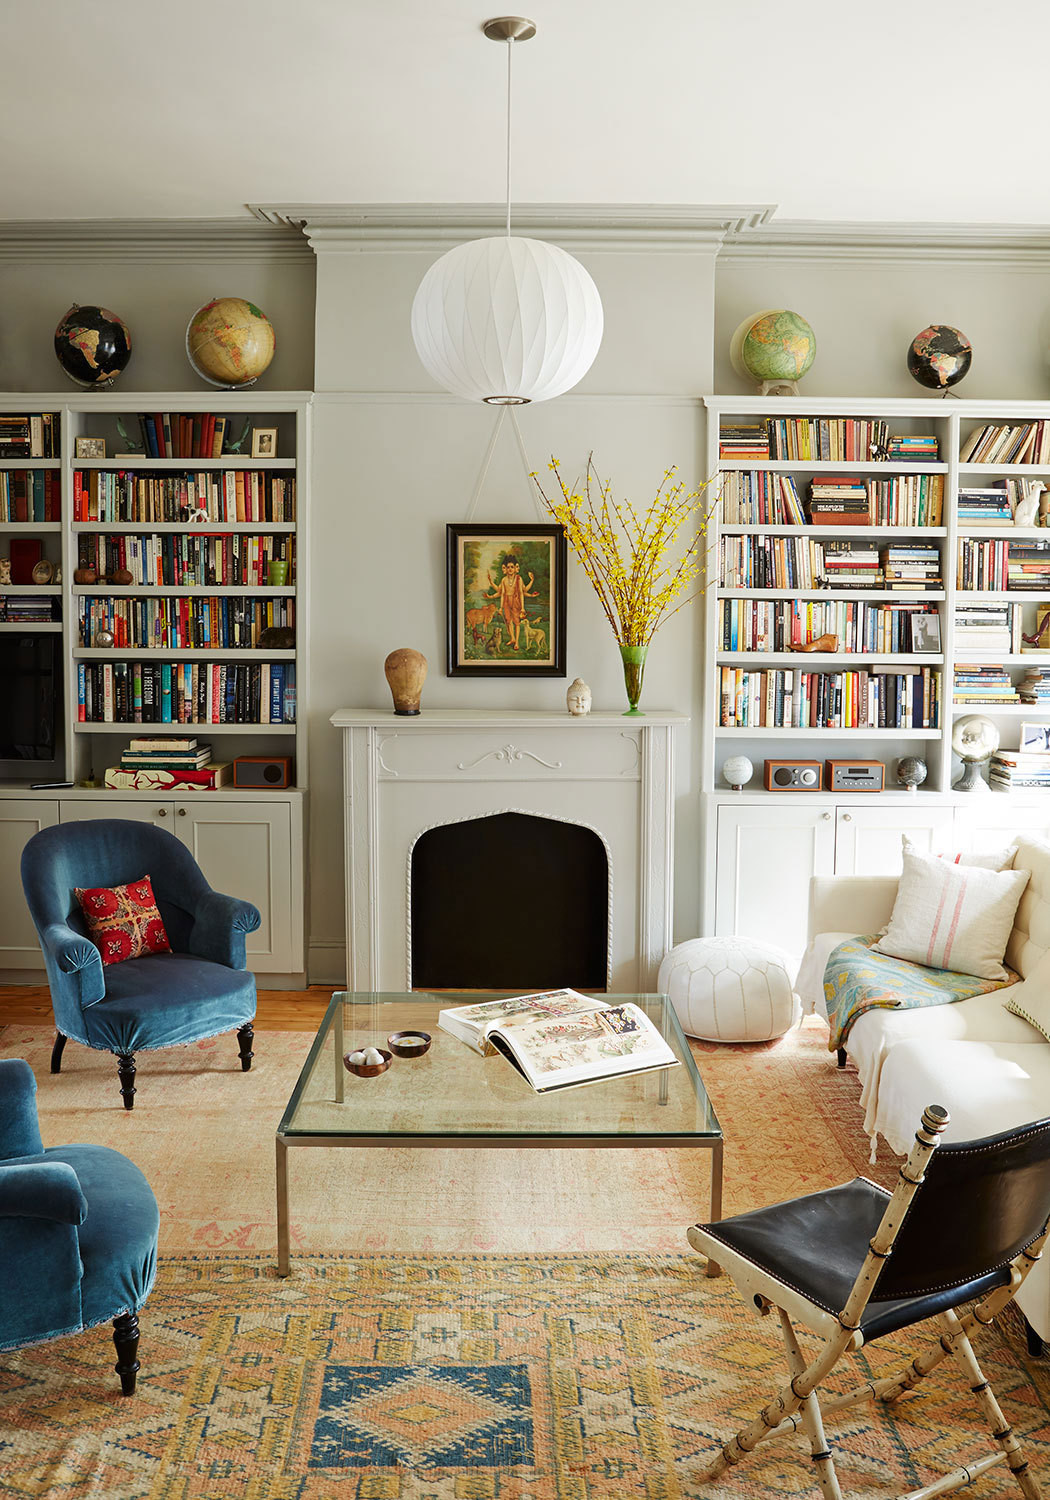 Get the Look: An Eclectic Living Room - Decorating - Lonny